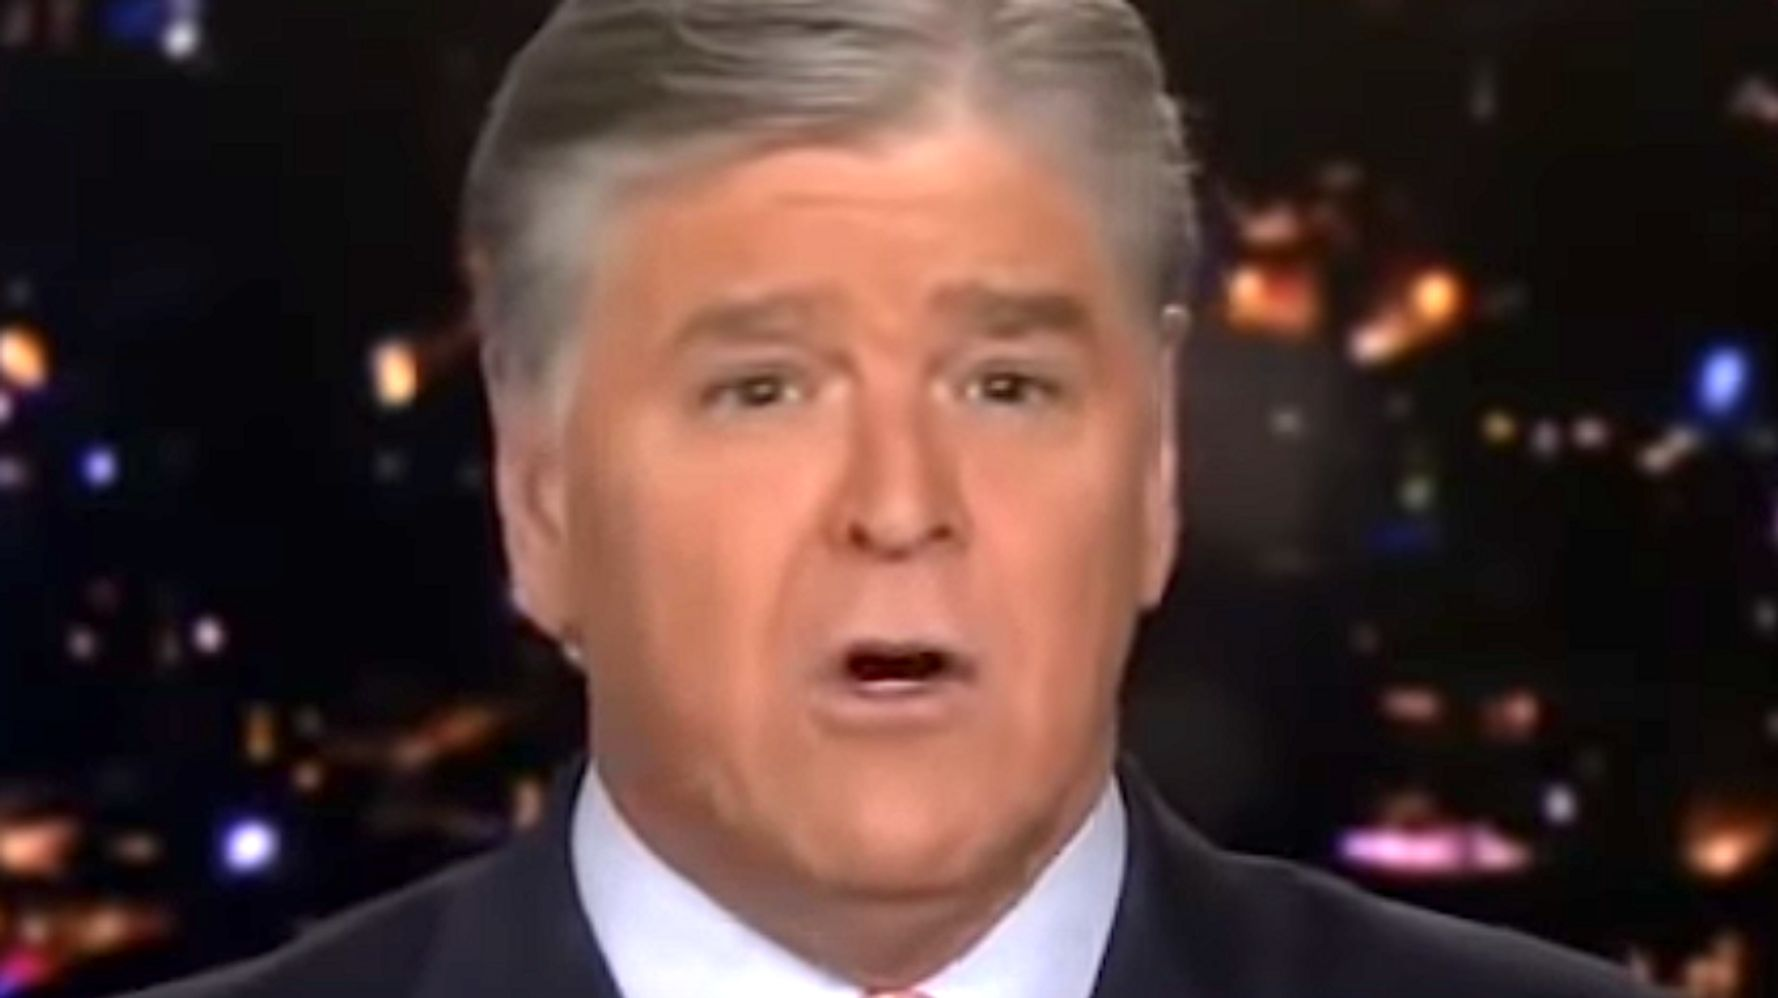 Sean Hannity's Rant At 'Hypocritical Democrats' Reeks Of Hypocrisy